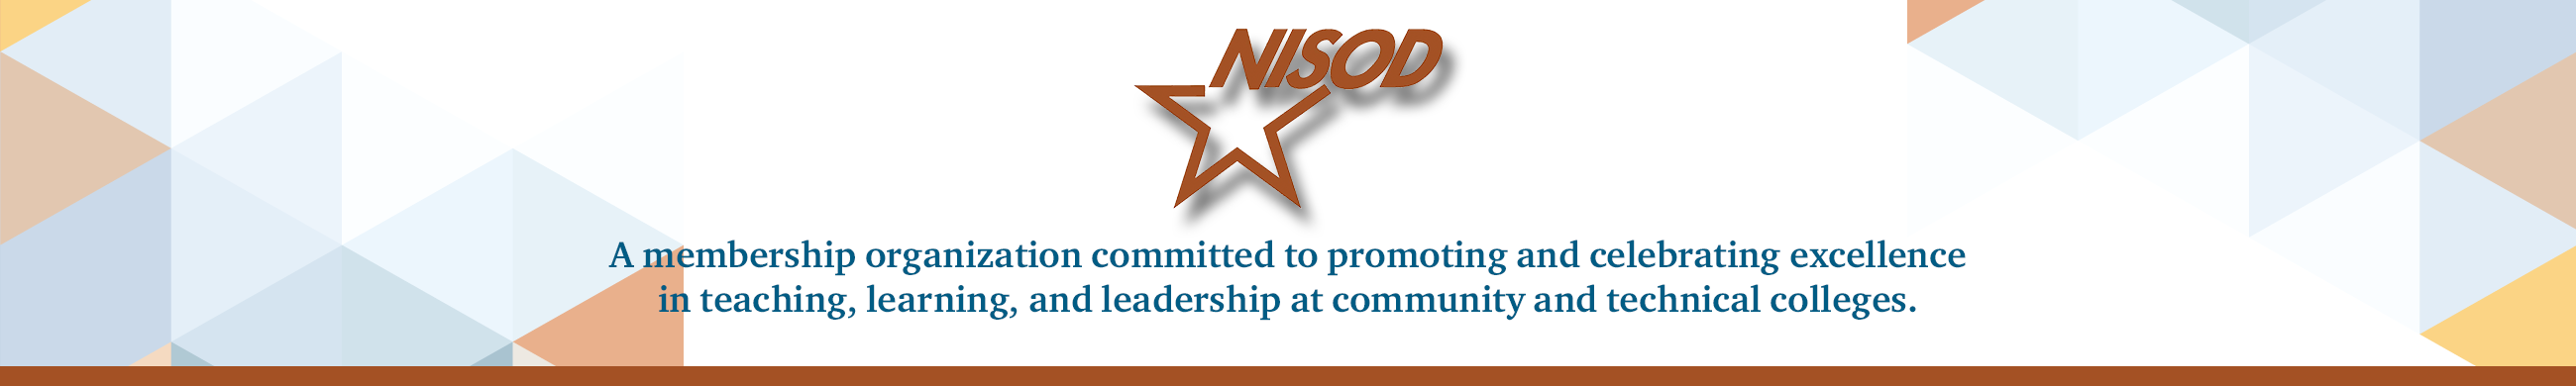 NISOD Logo and Header